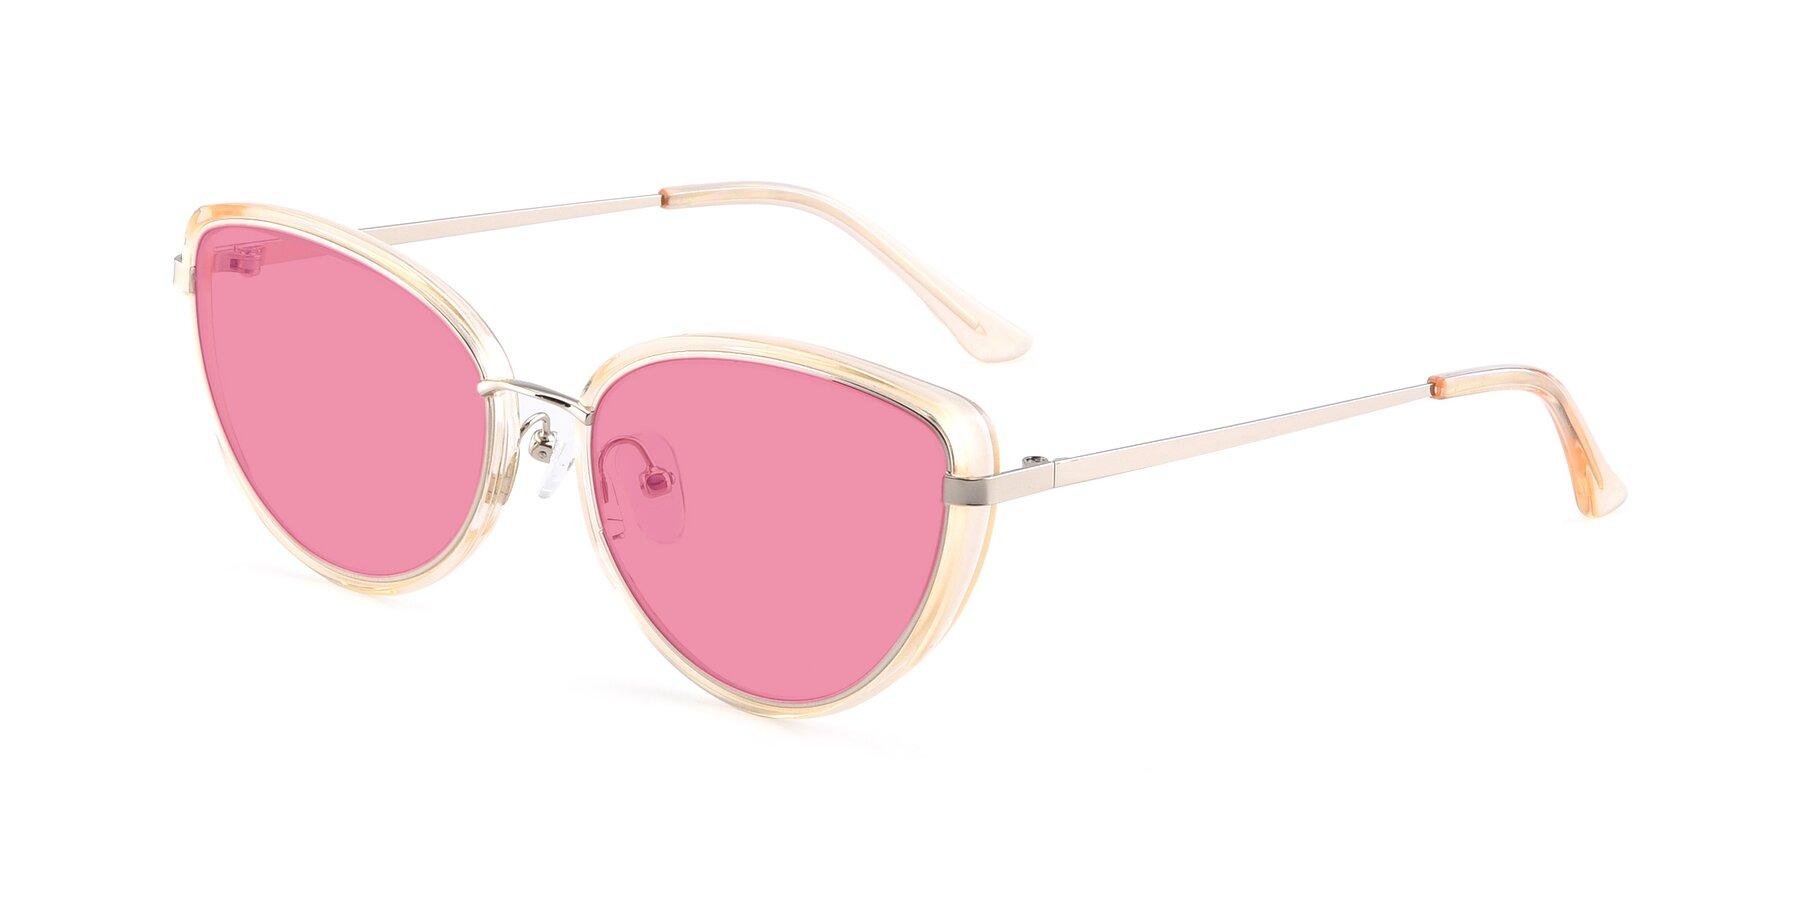 Angle of 17706 in Transparent Caramel-Silver with Pink Tinted Lenses